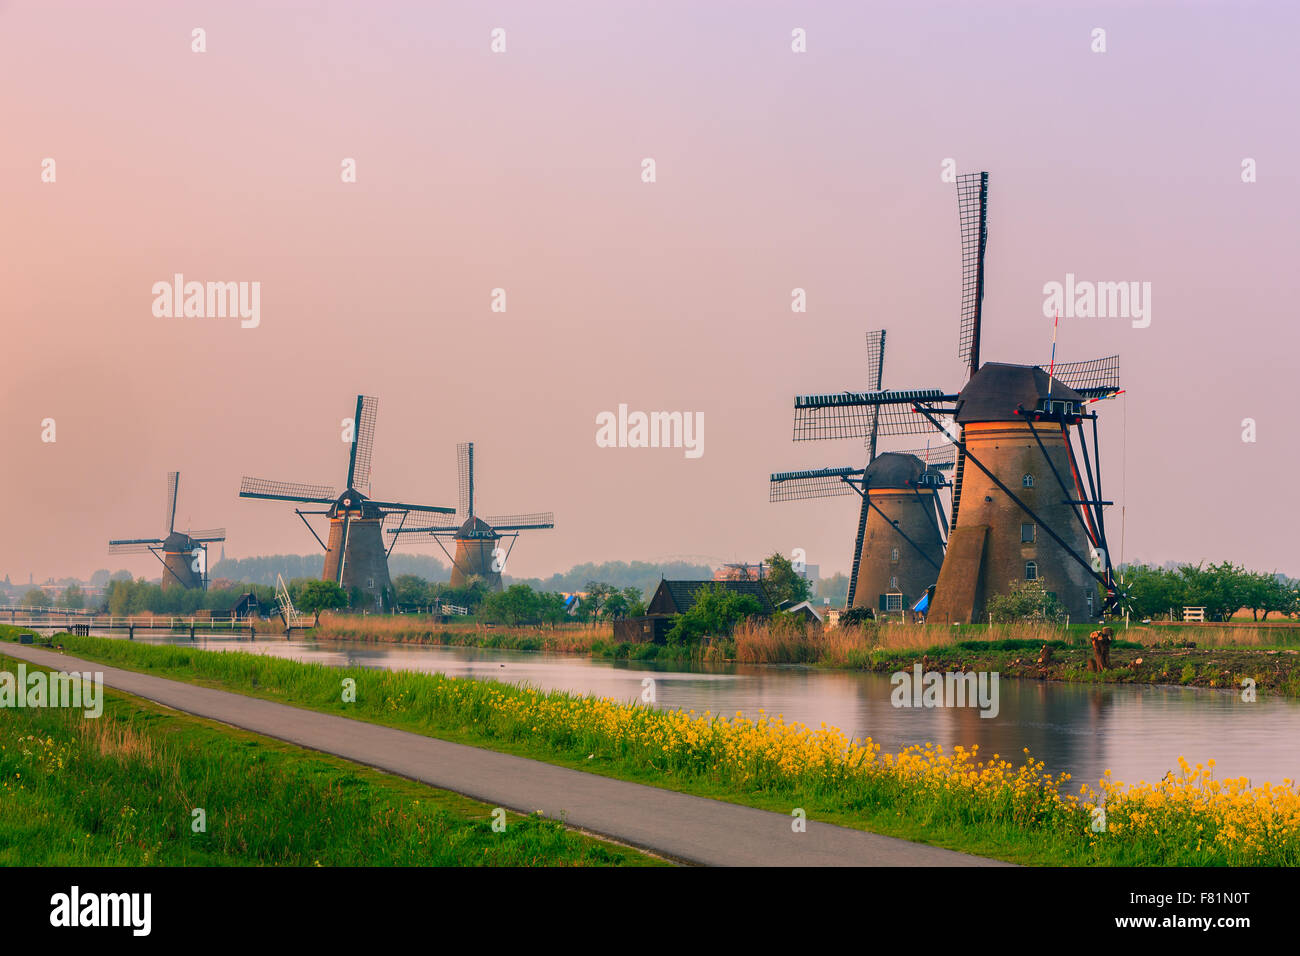 The famous windmills at the Kinderdijk, south Holland, Netherlands - Stock Image